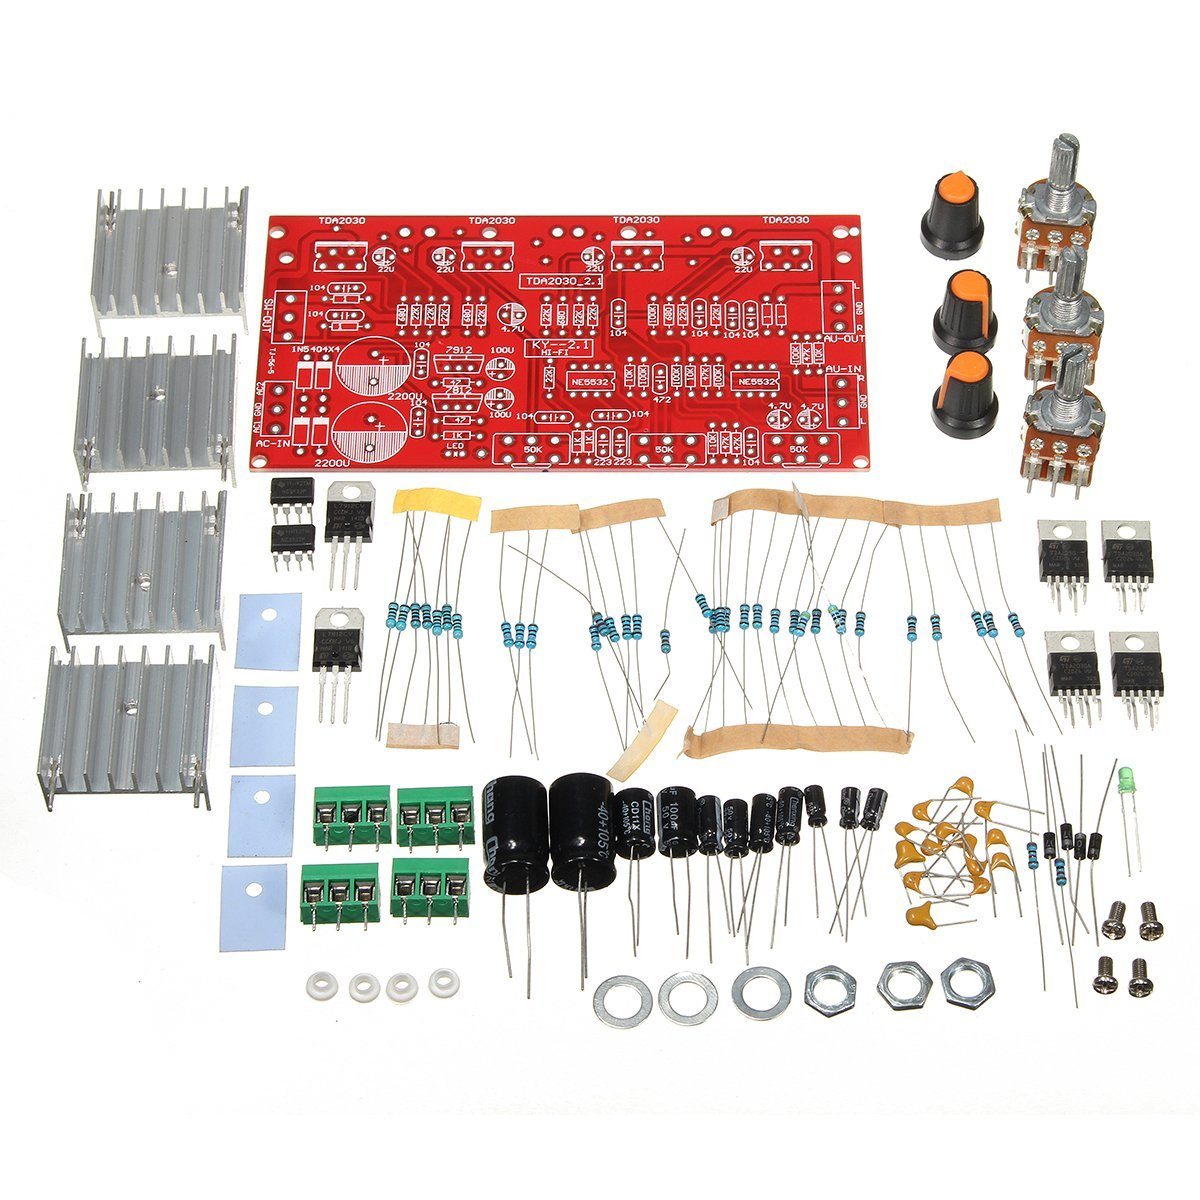 Cheap Amplifier Kit Diy Find Deals On Line At 300watt Subwoofer Power Wiring Diagram Electronic Schematic Get Quotations Bephamart 12v 30w Tda2030 Audio Board Dual Tracks